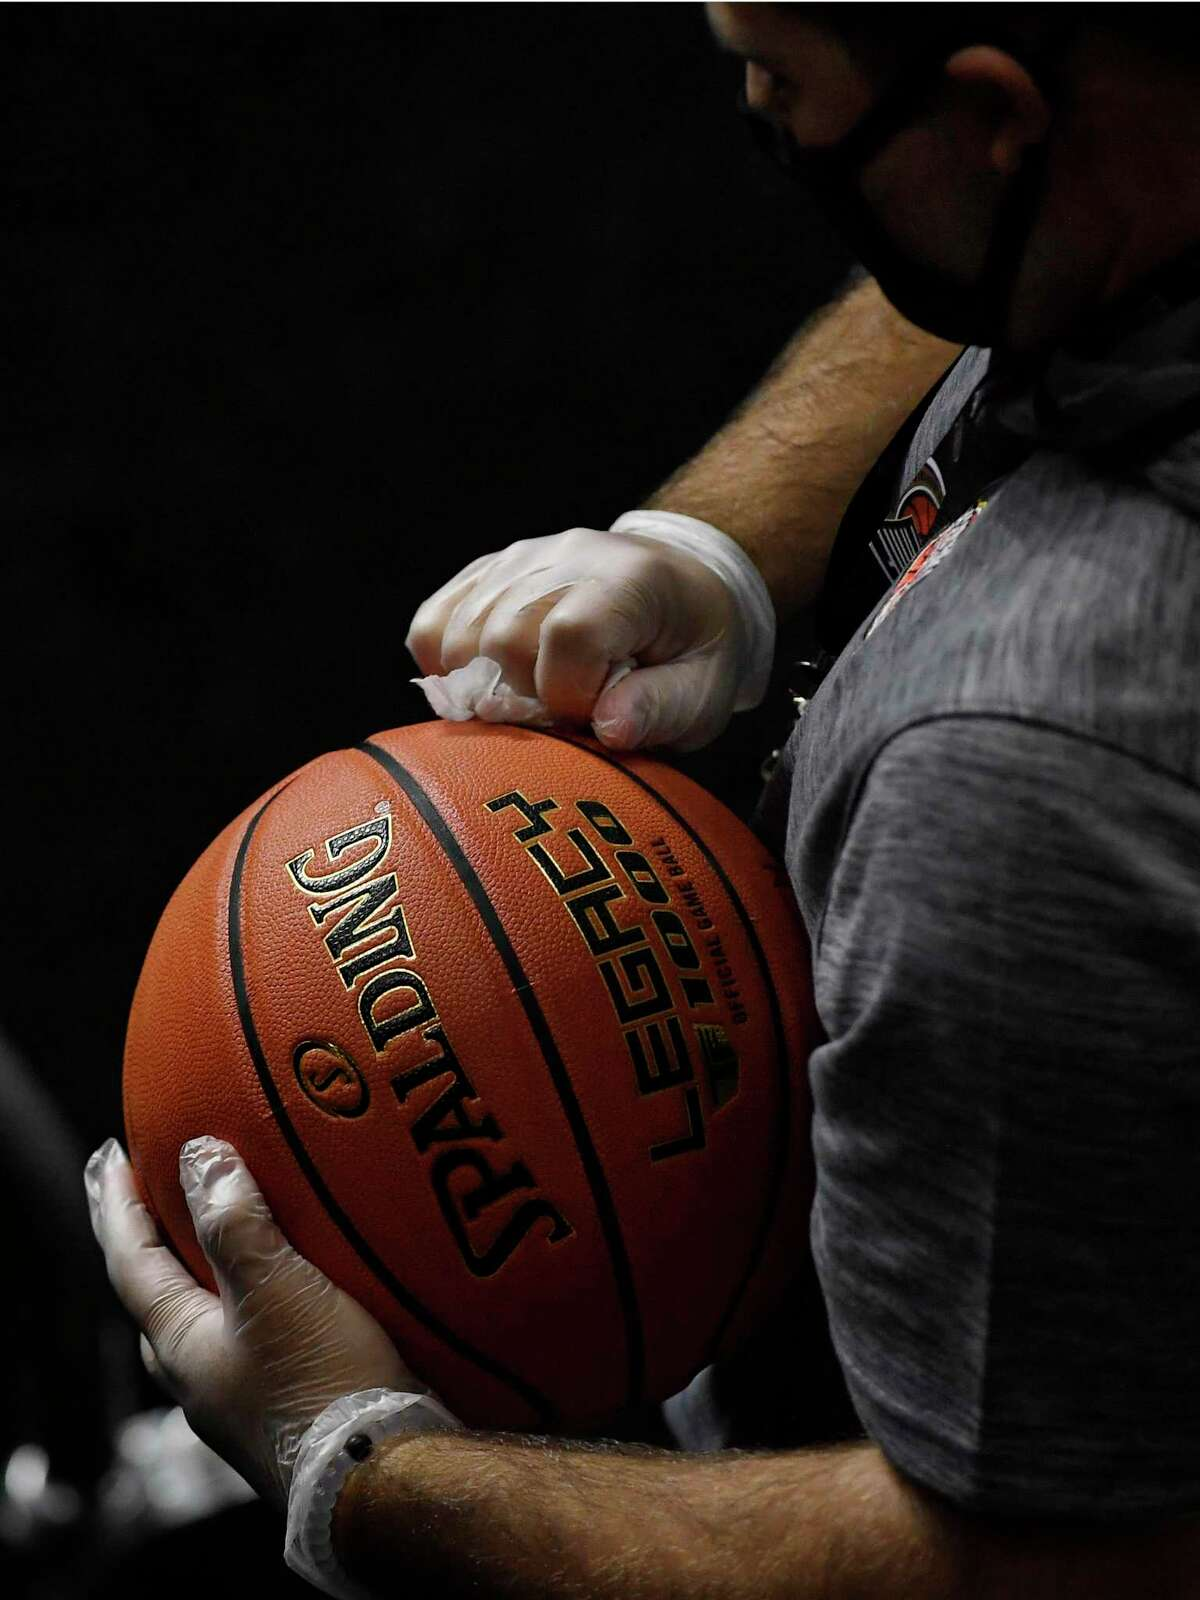 A man cleans basketballs to be used in an upcoming NCAA college basketball game between San Francisco and Virginia with alcohol wipes, Friday, Nov. 27, 2020, in Uncasville.